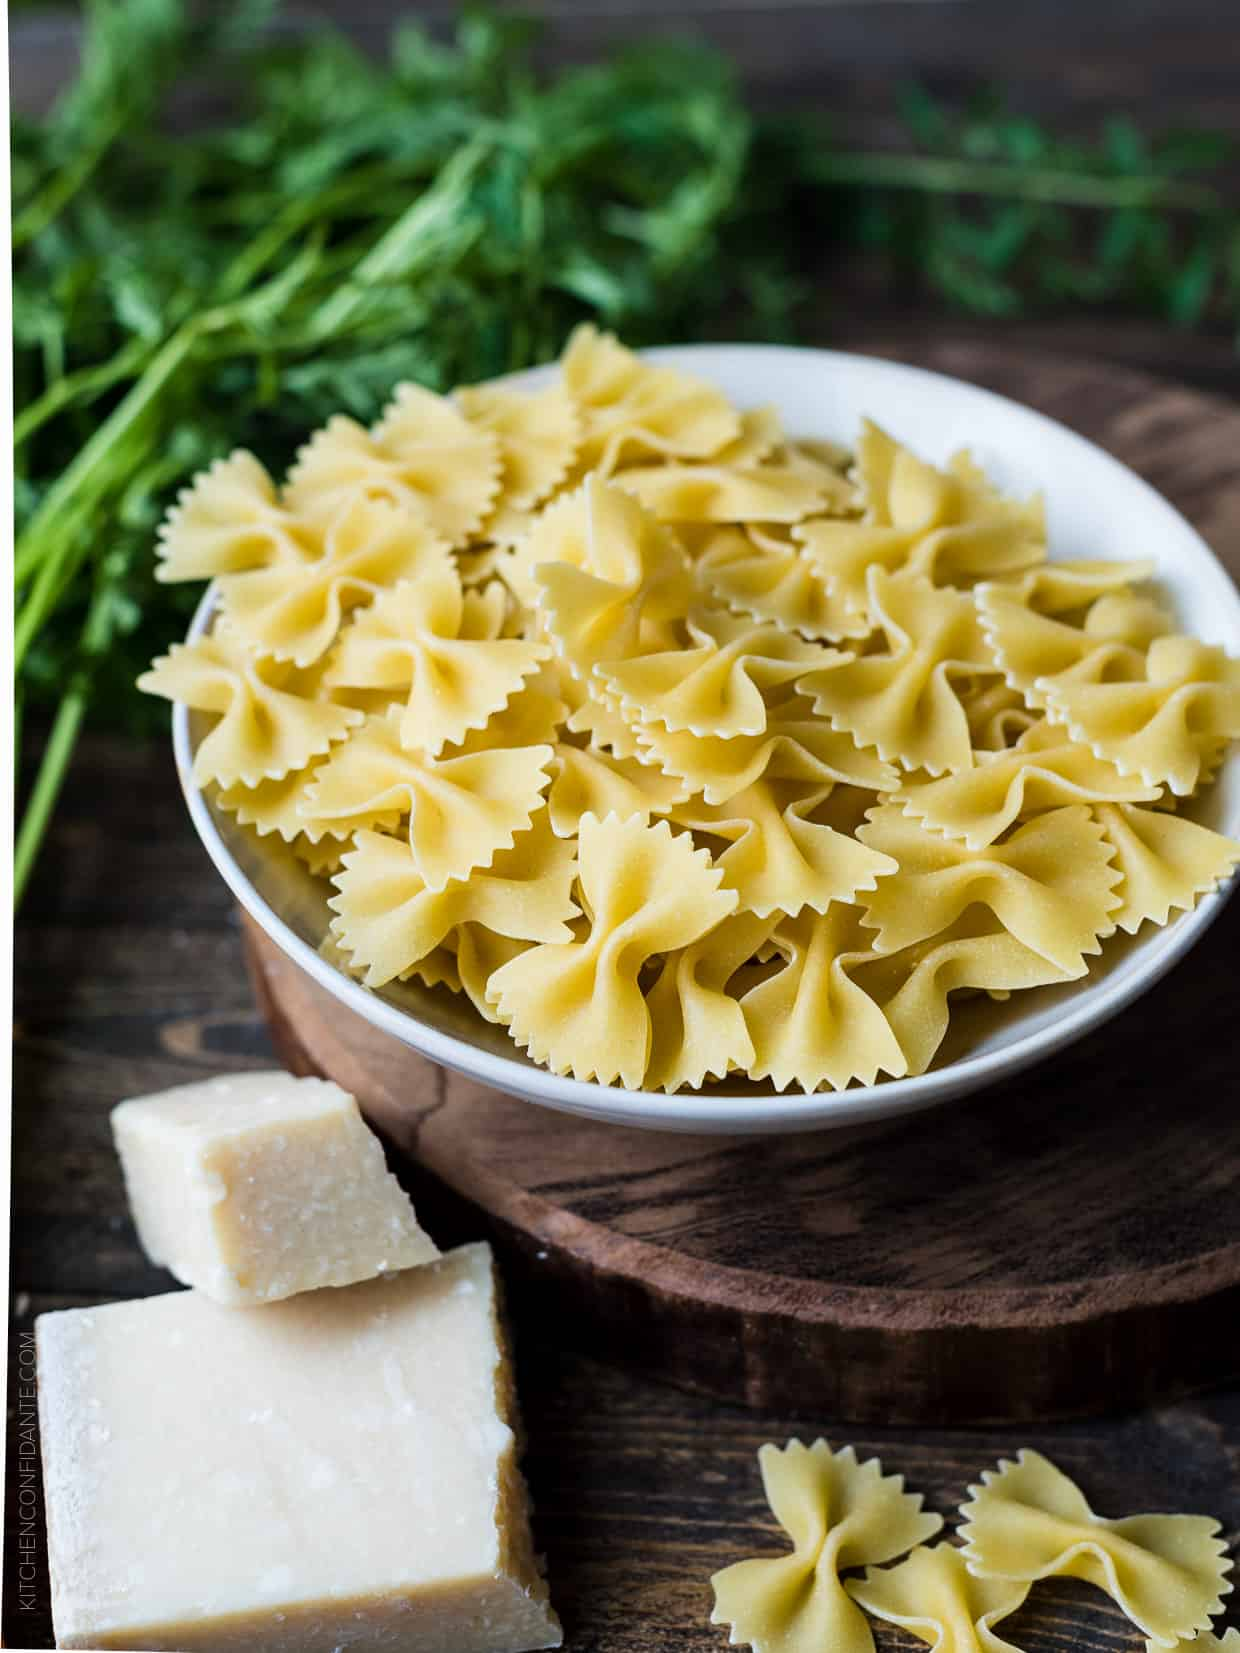 Farfalle is perfect for spring, and in this Farfalle with Roasted Carrot Pesto, Parmesan and Toasted Walnuts!